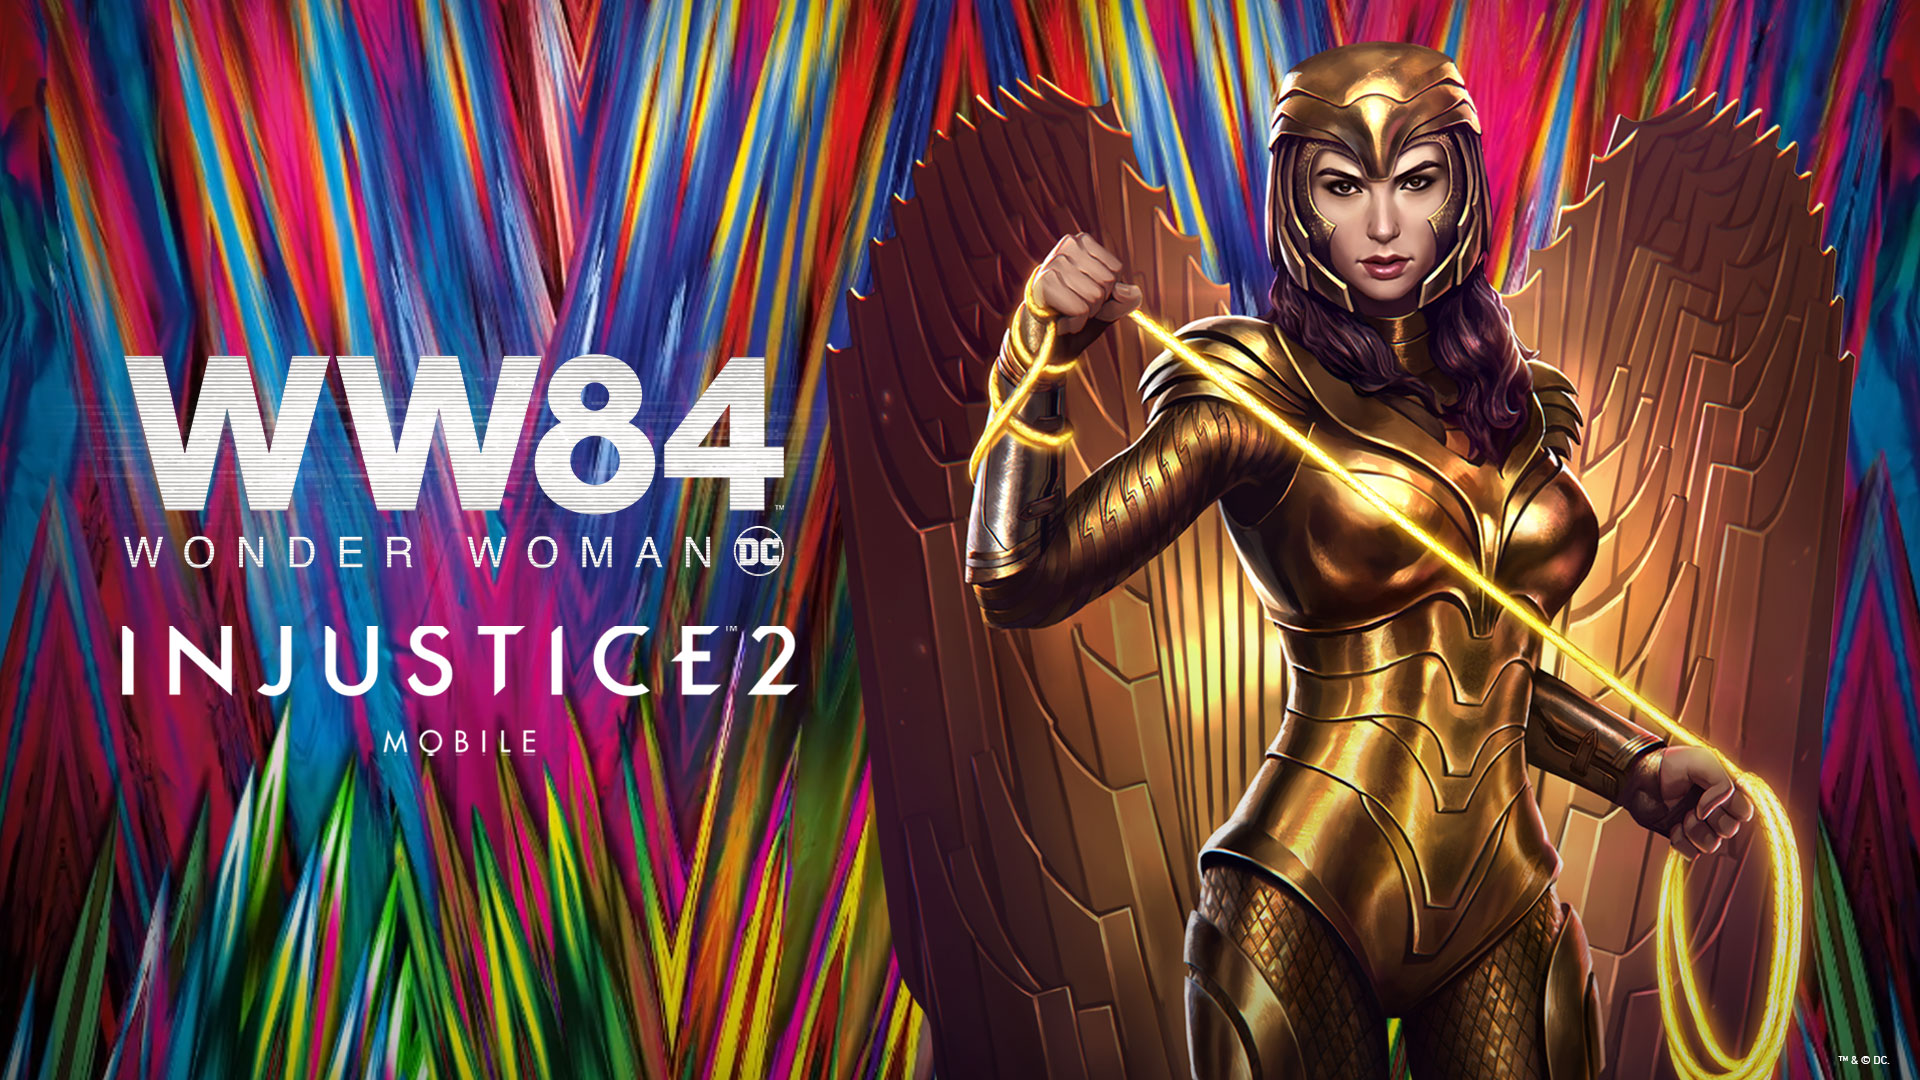 Wonder Woman Armatura Dorata disponibile per il gioco mobile Injustice 2